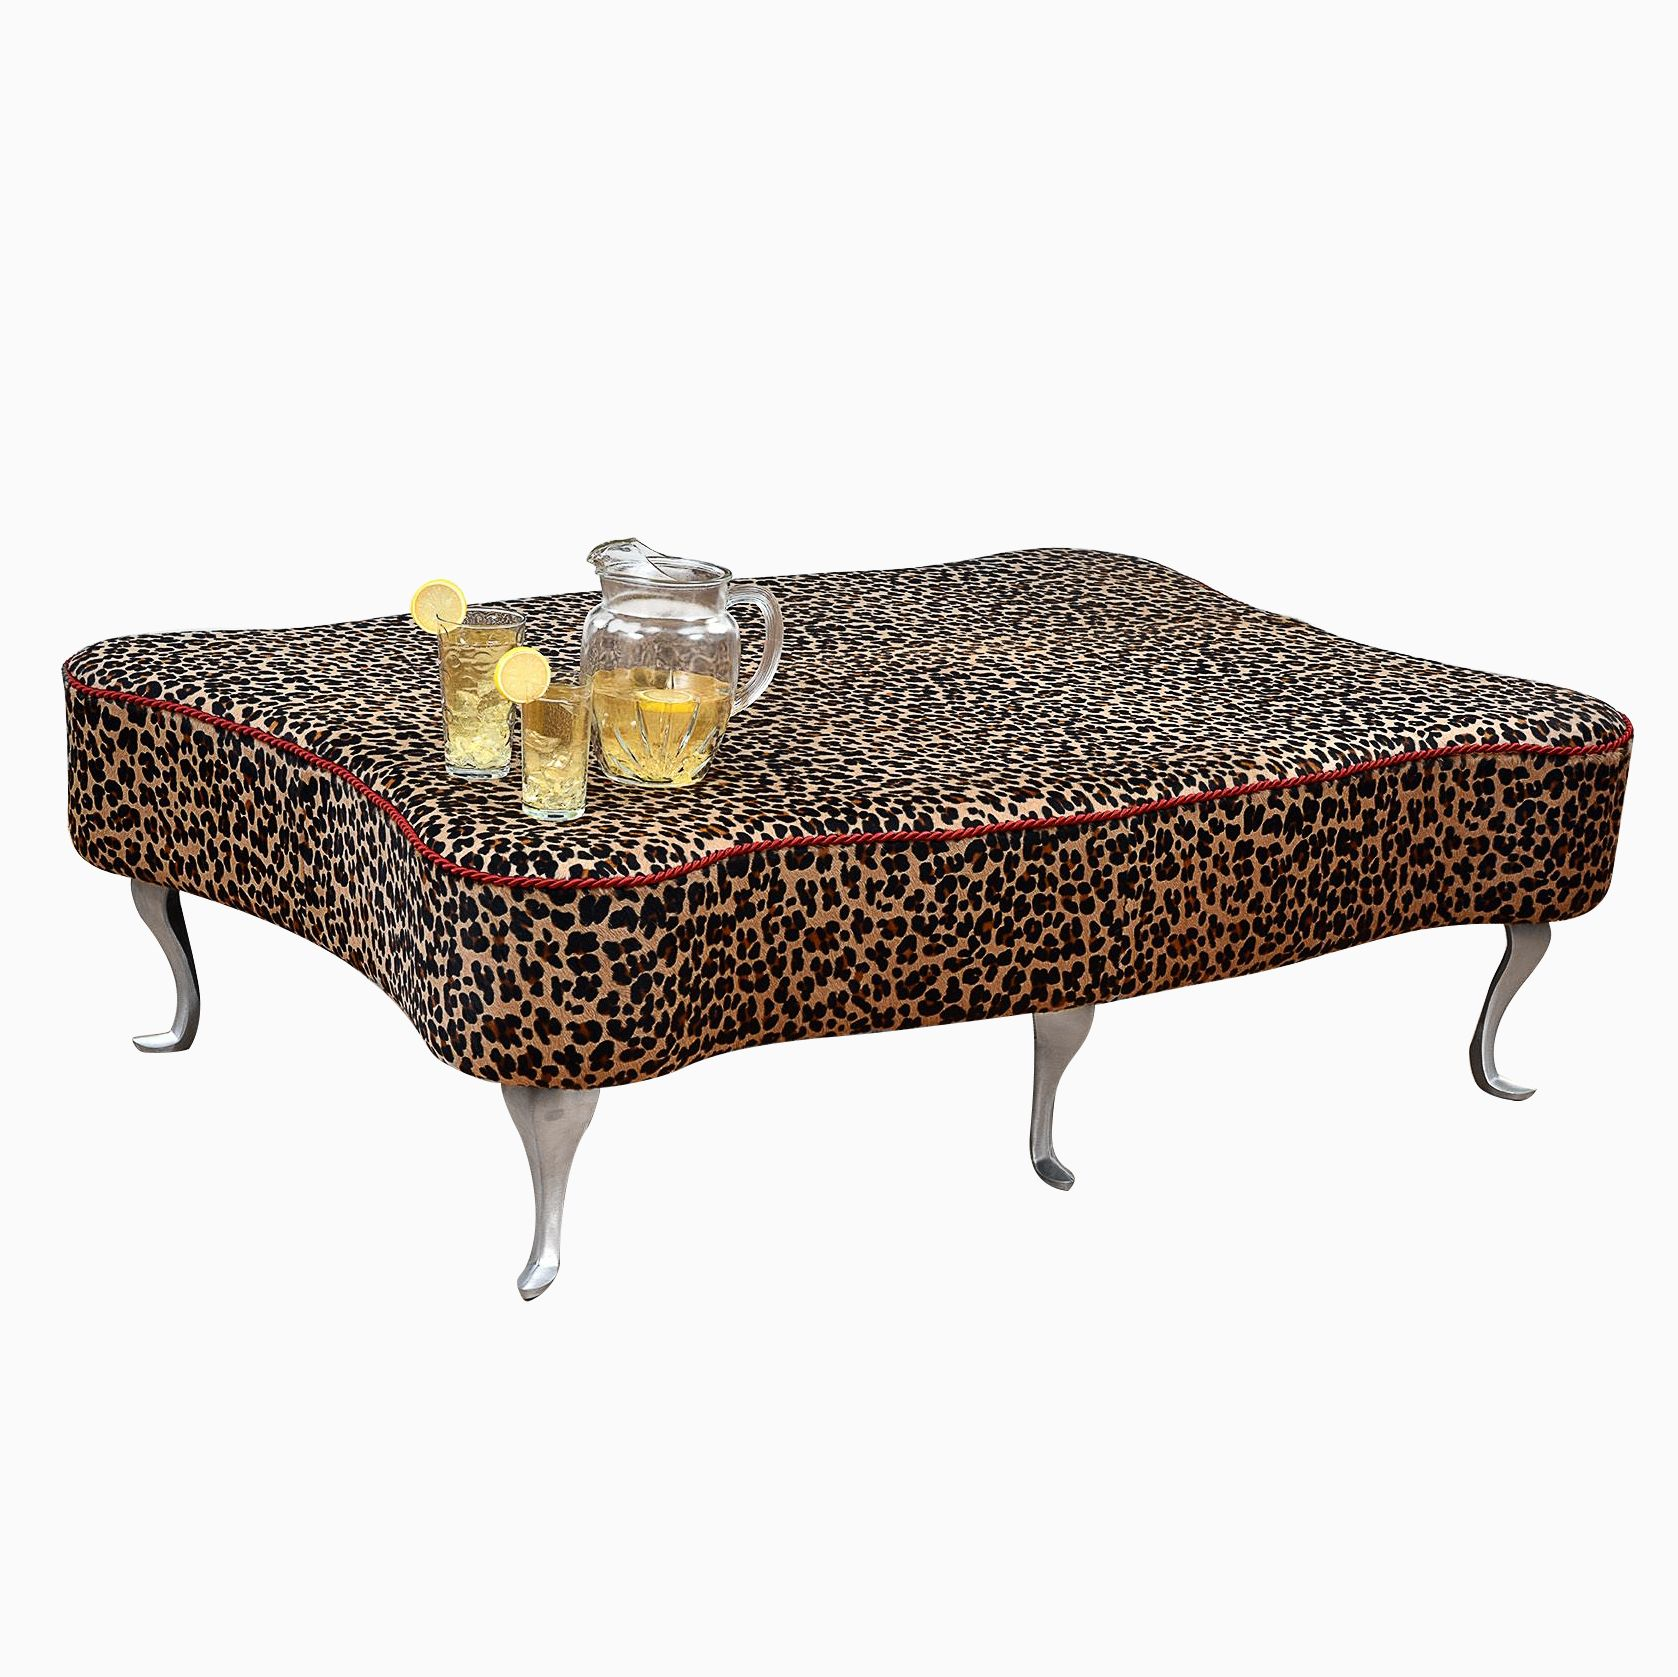 Buy A Custom Leopard Leather Hair On Hide Ottoman Coffee Table Made To Order From Corl Design